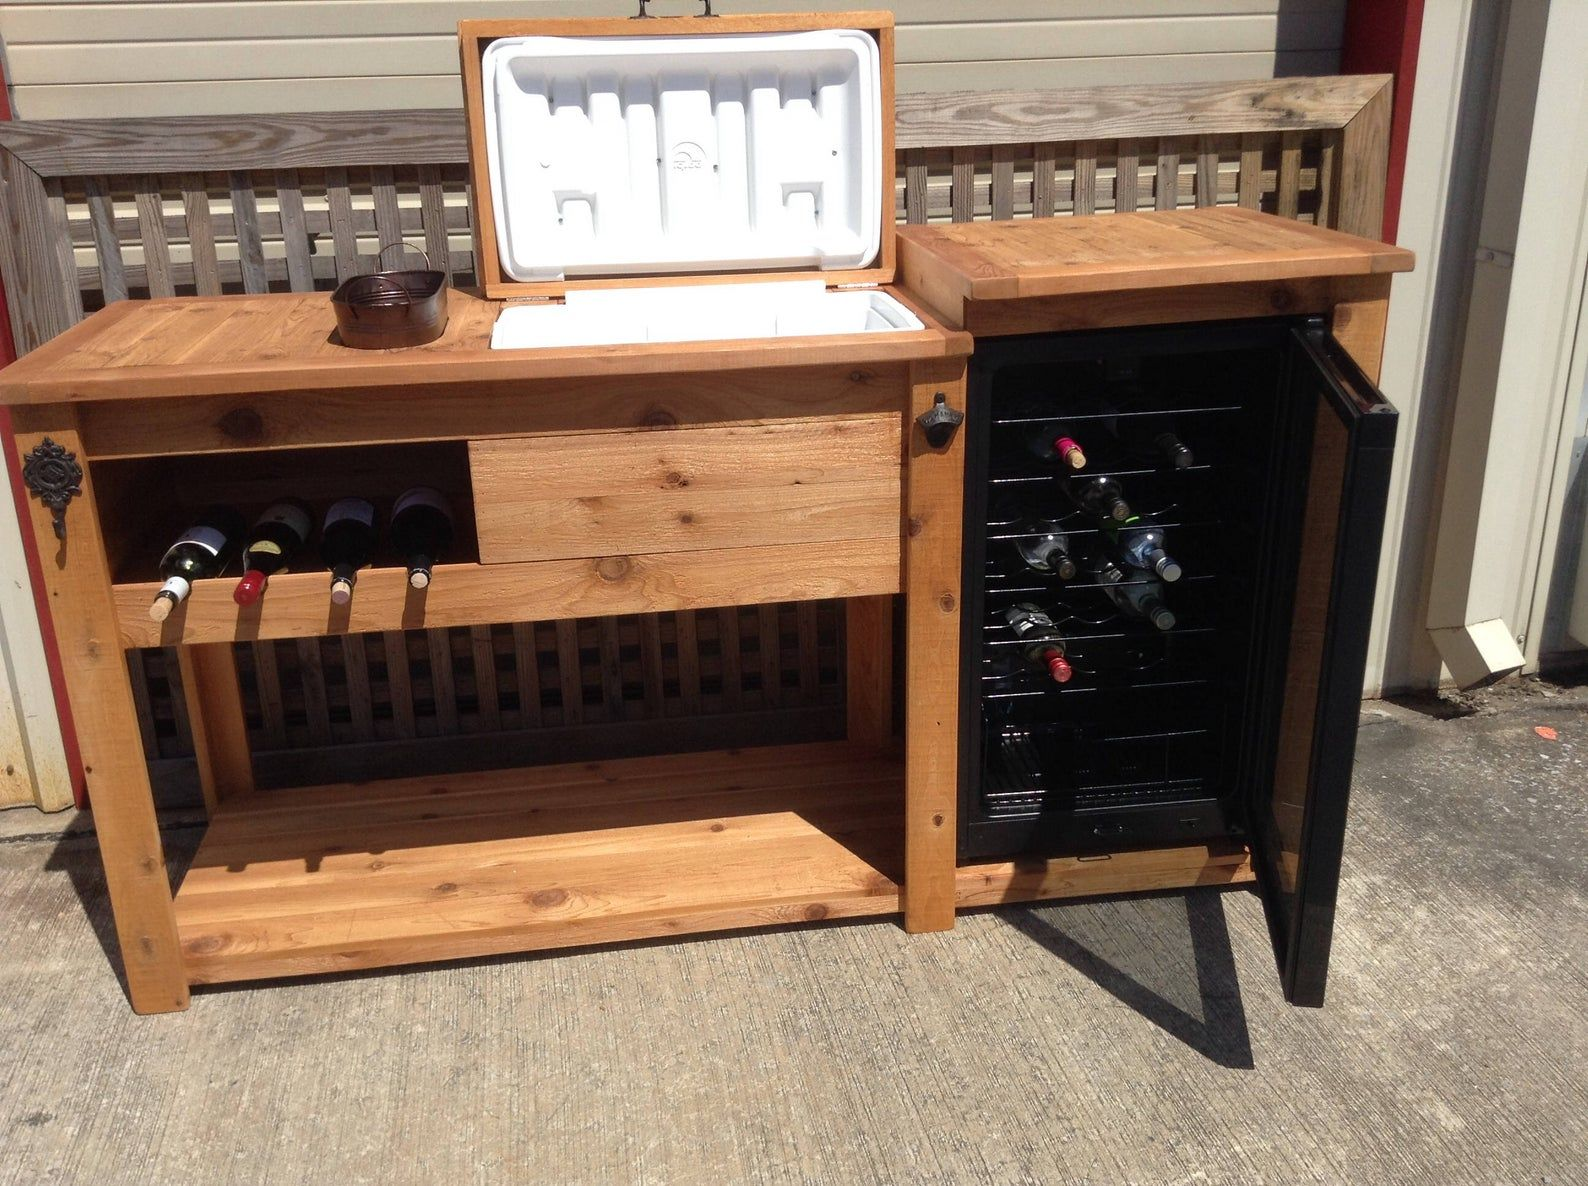 Mini Fridge Cooler Table Can Be Customized Etsy Outdoor Patio Bar Wooden Cooler Bar Furniture